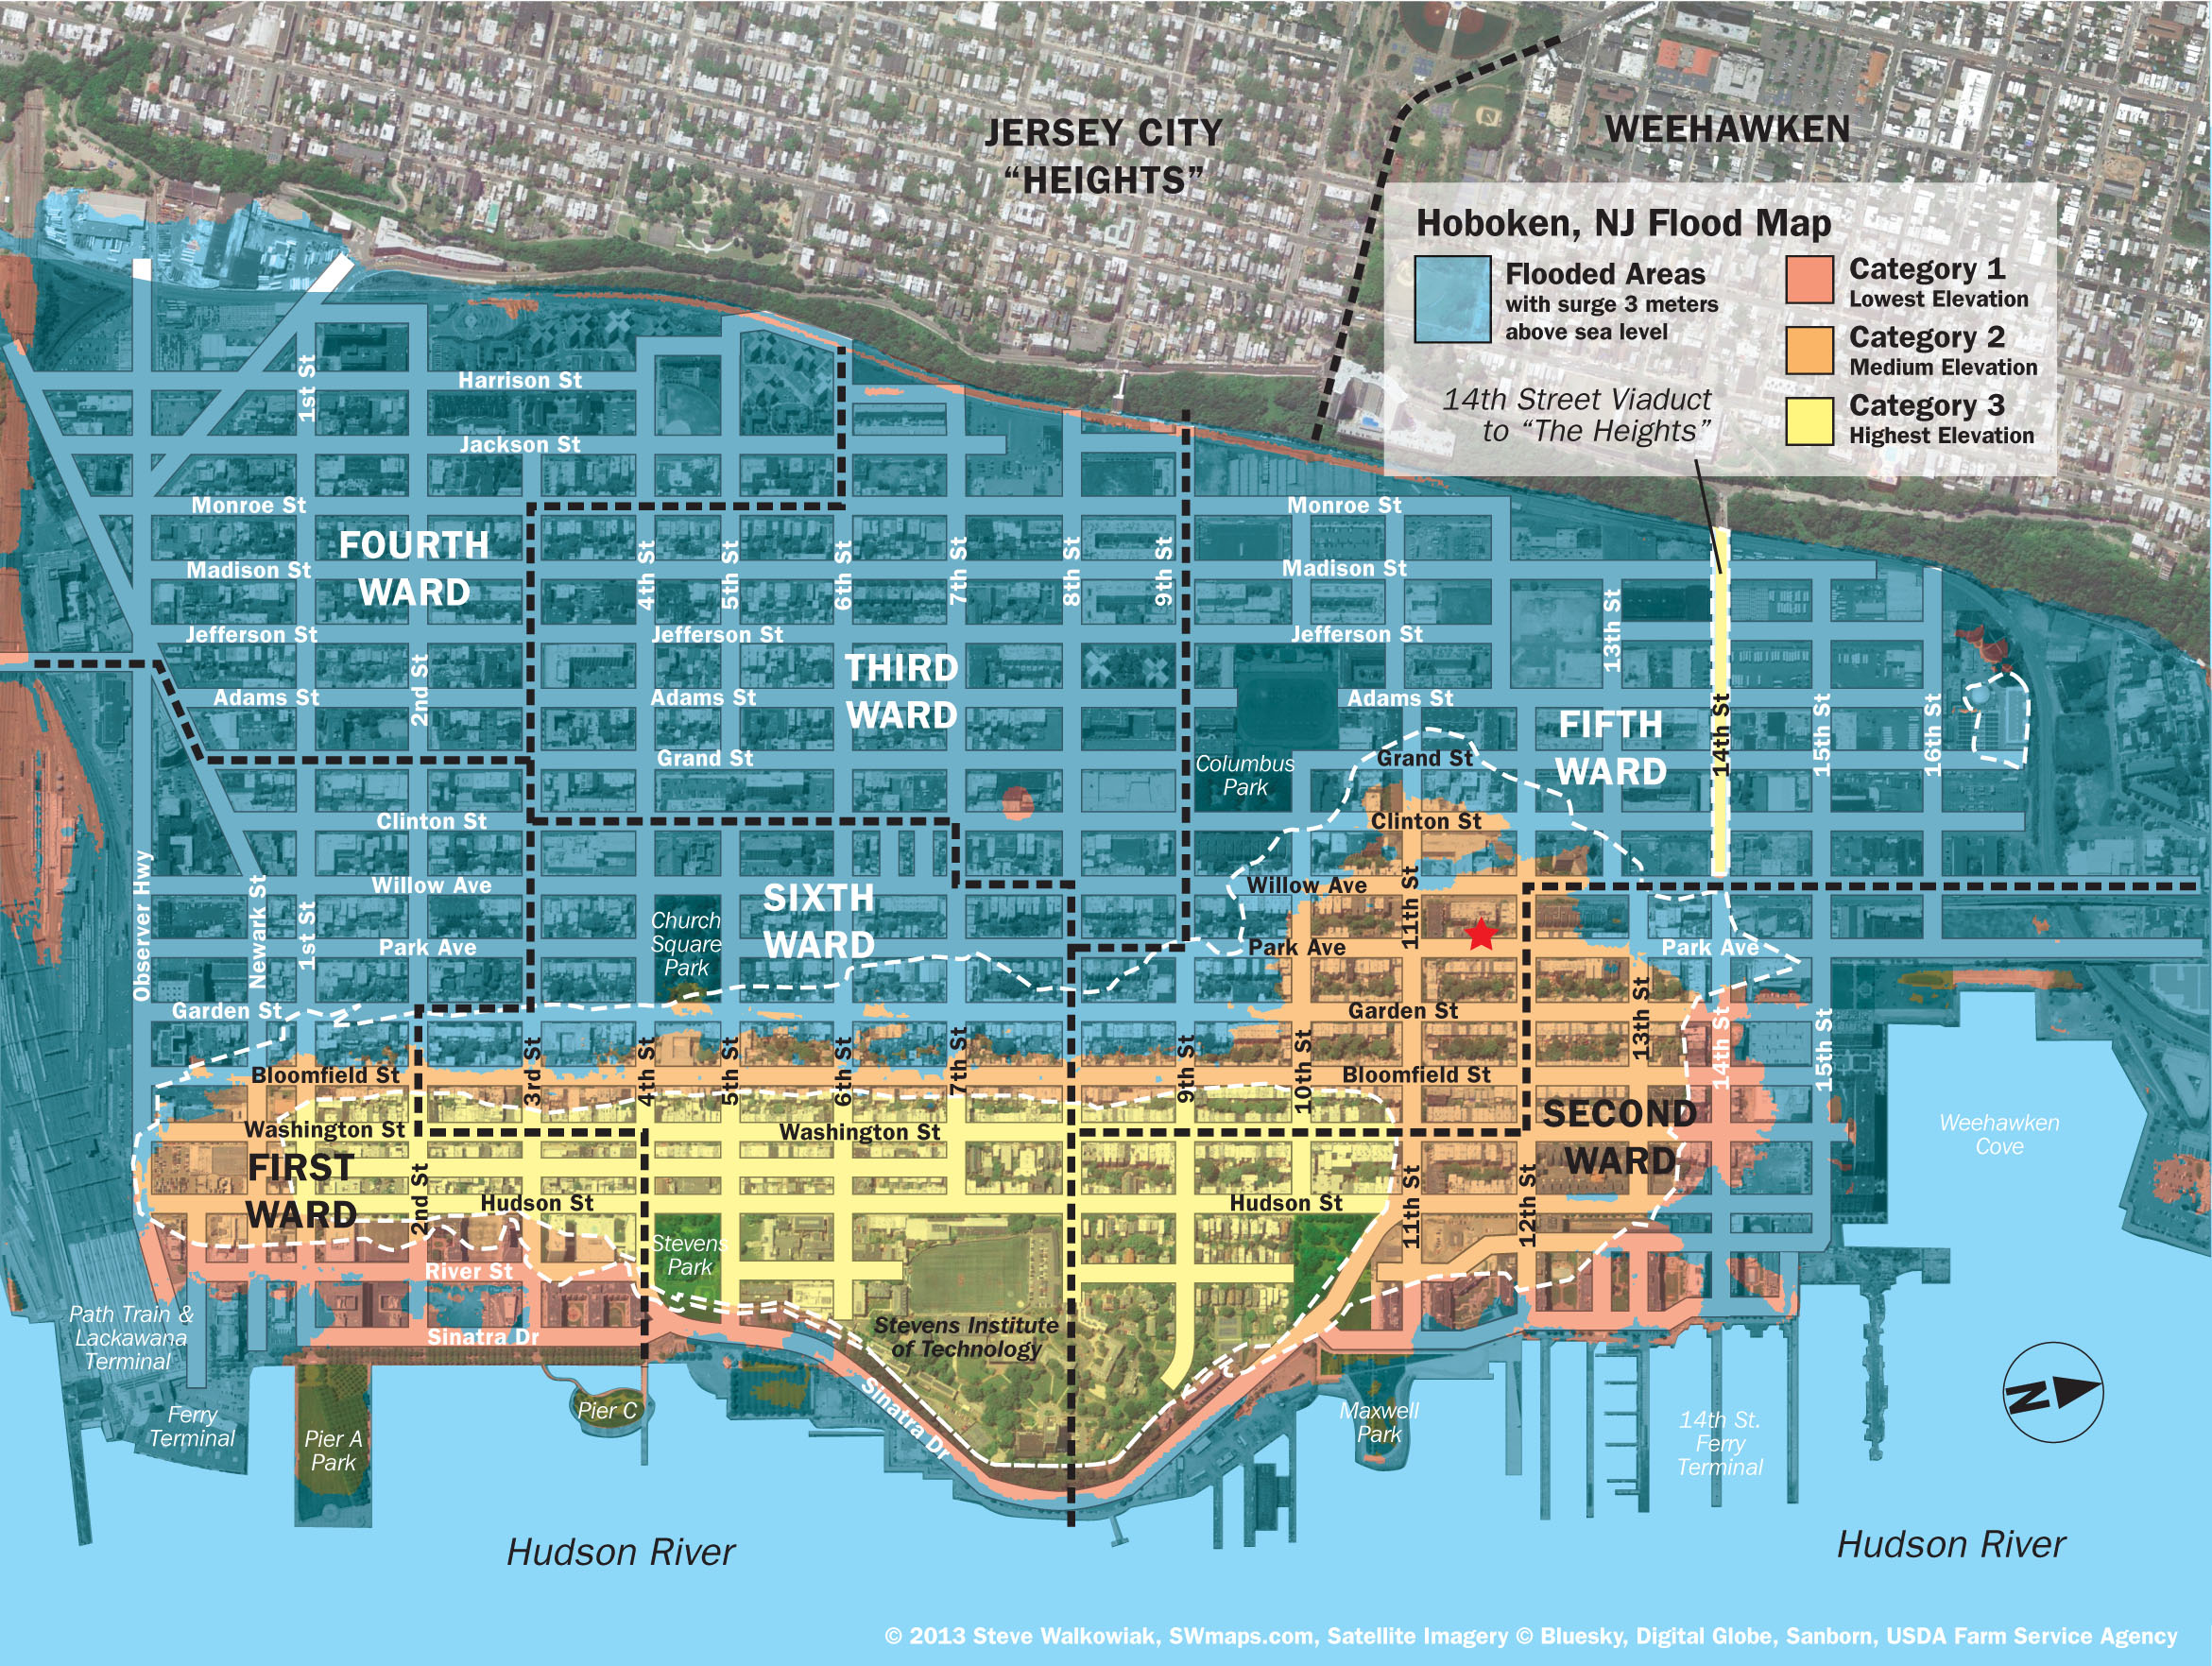 New Hoboken Flood Map With Water Levels, Post Hurricane Sandy - Flood Plain Map Florida